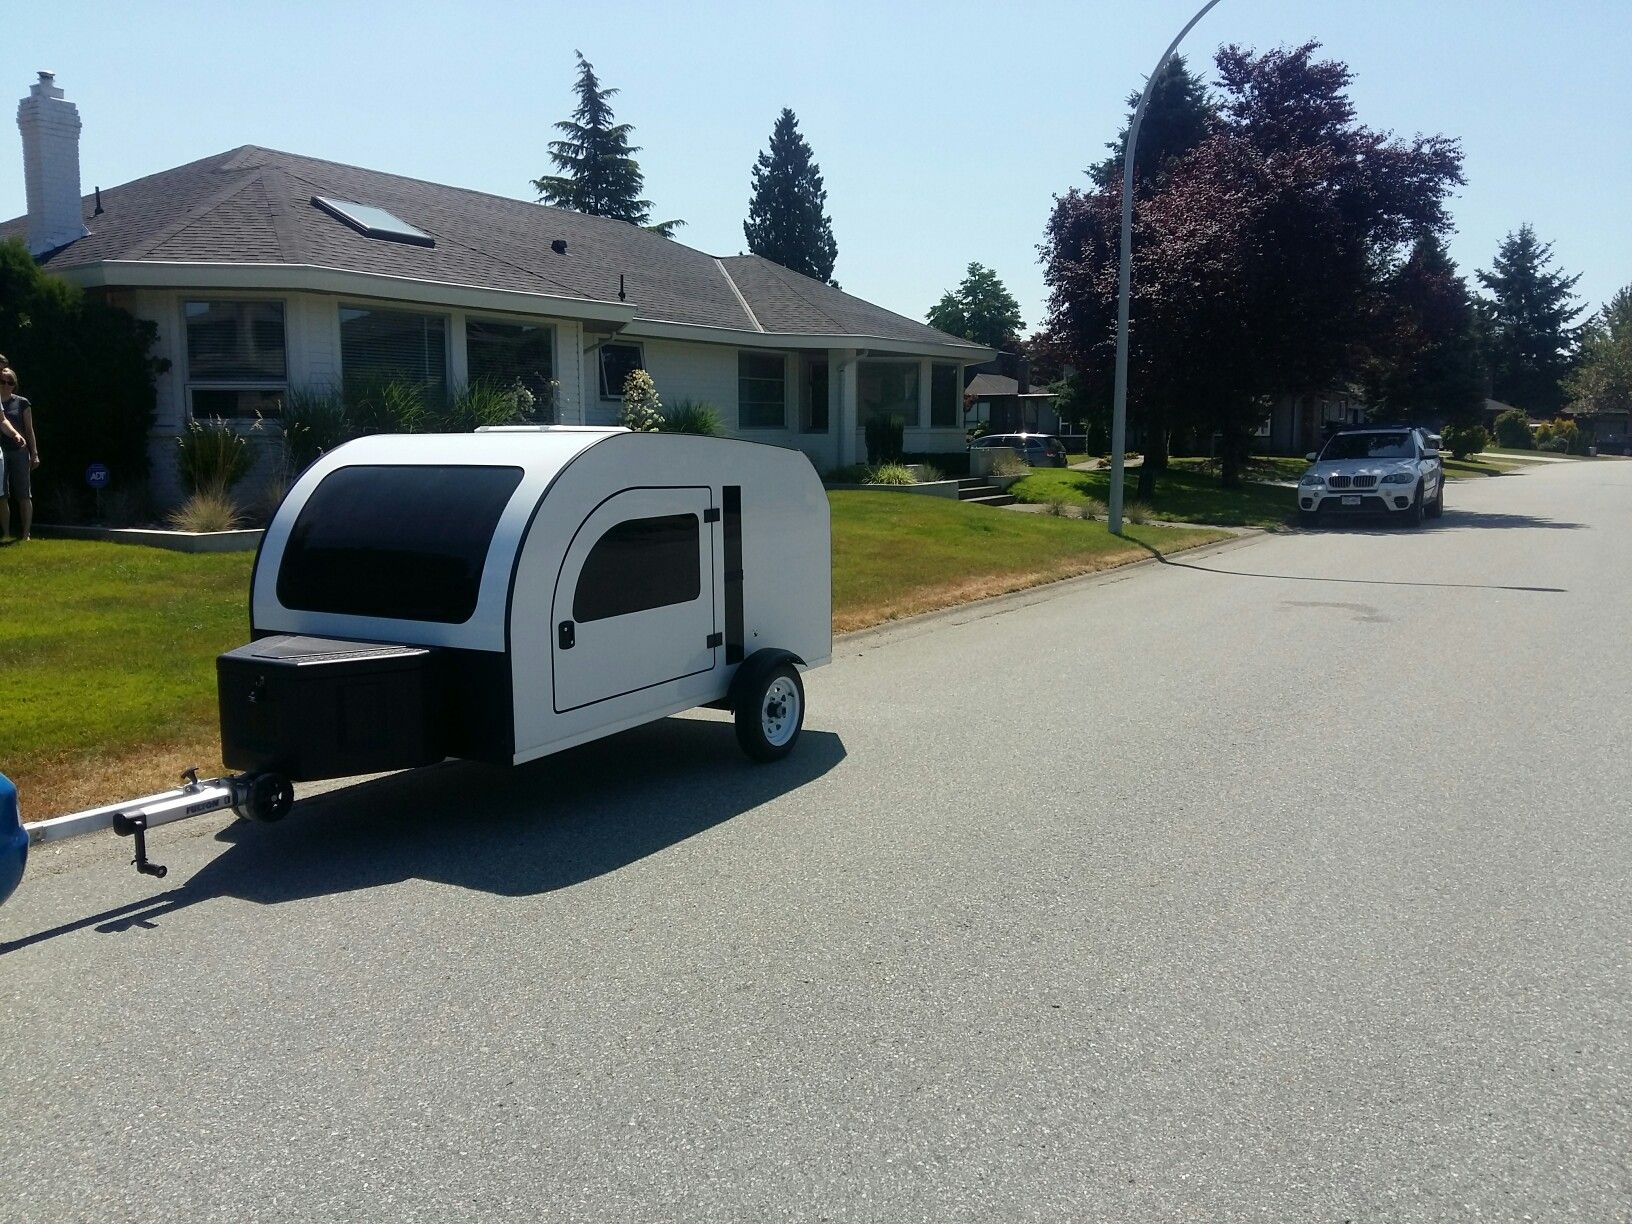 Discreet Street Sleeping Or Extra Bedroom For Guests DROPLET Is A Camping Pod But Also